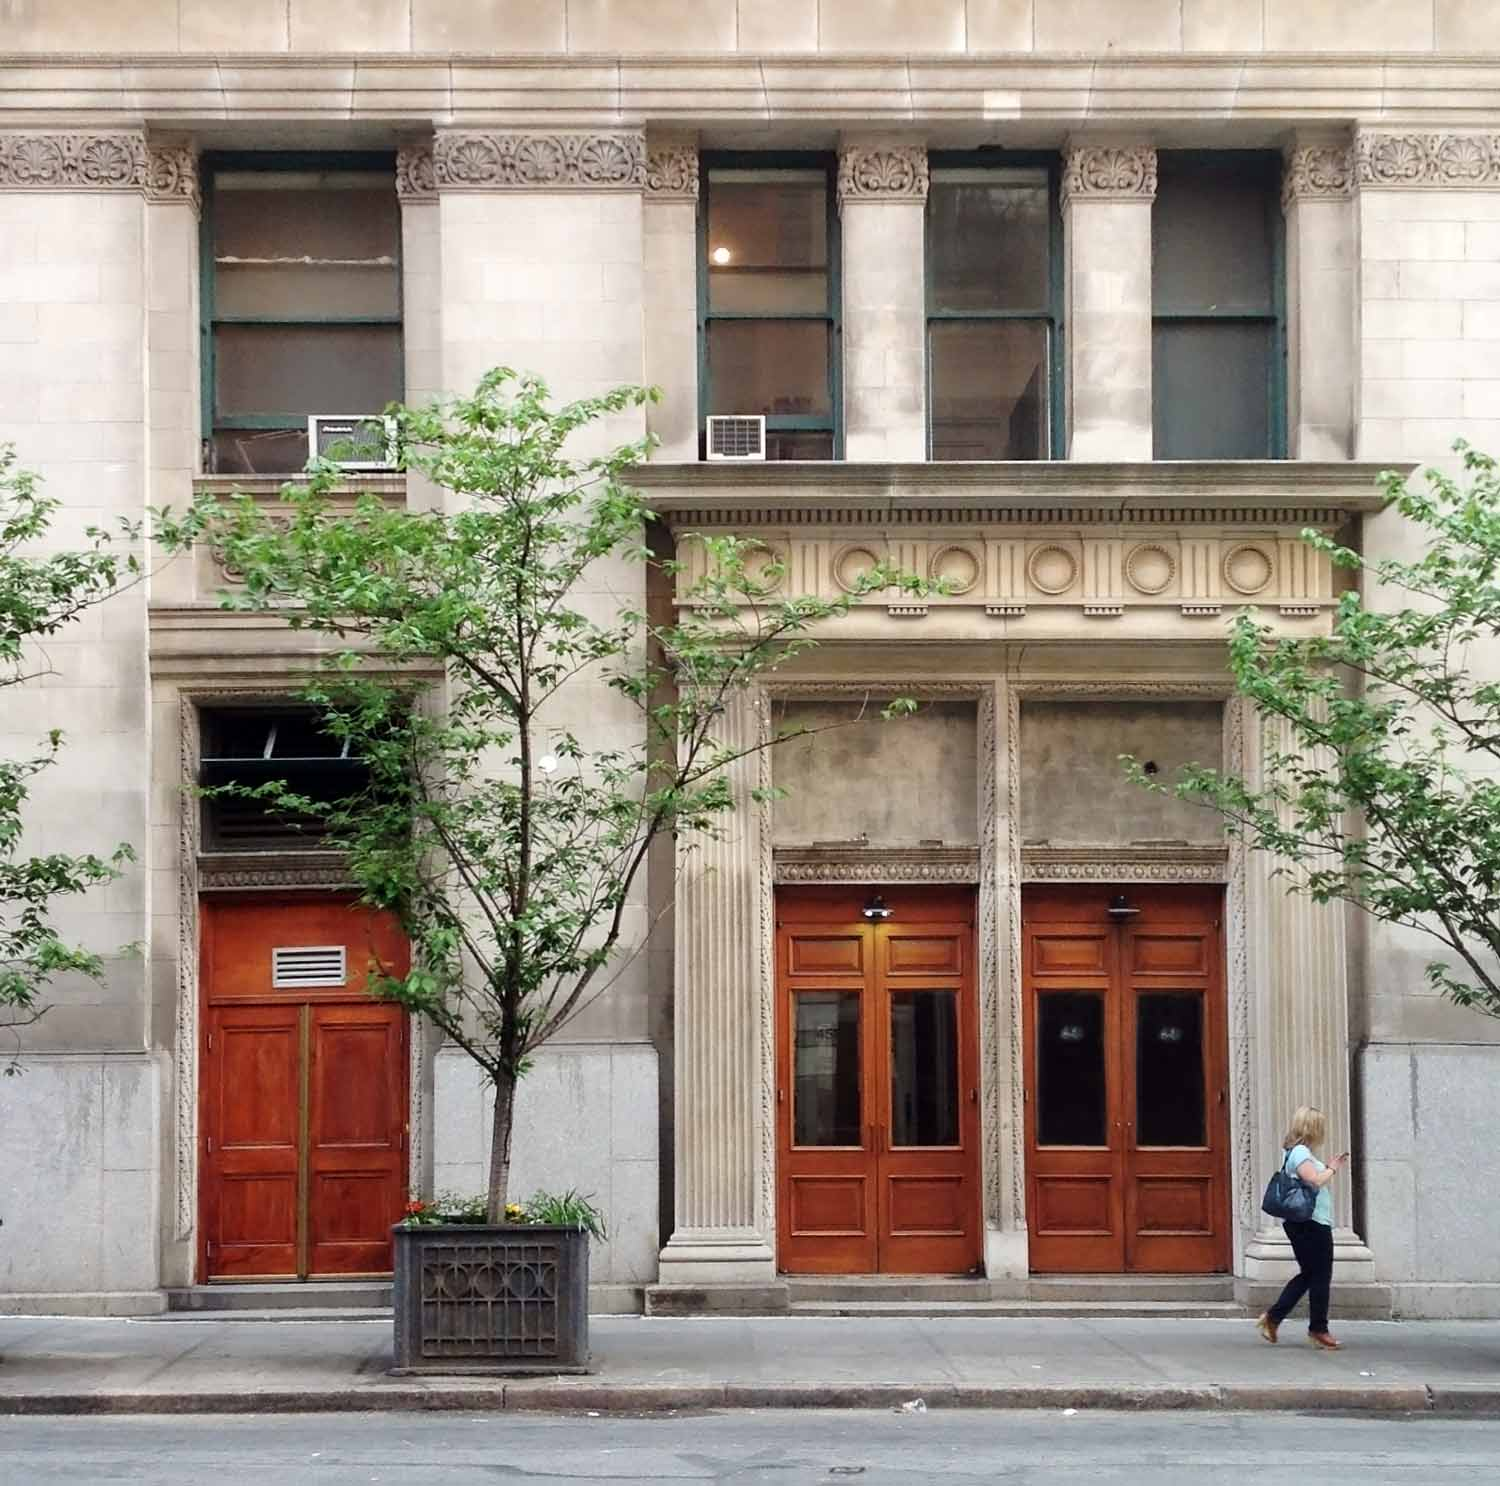 The historic lobby of this residential building on Broome Street was restored by OCV Architects